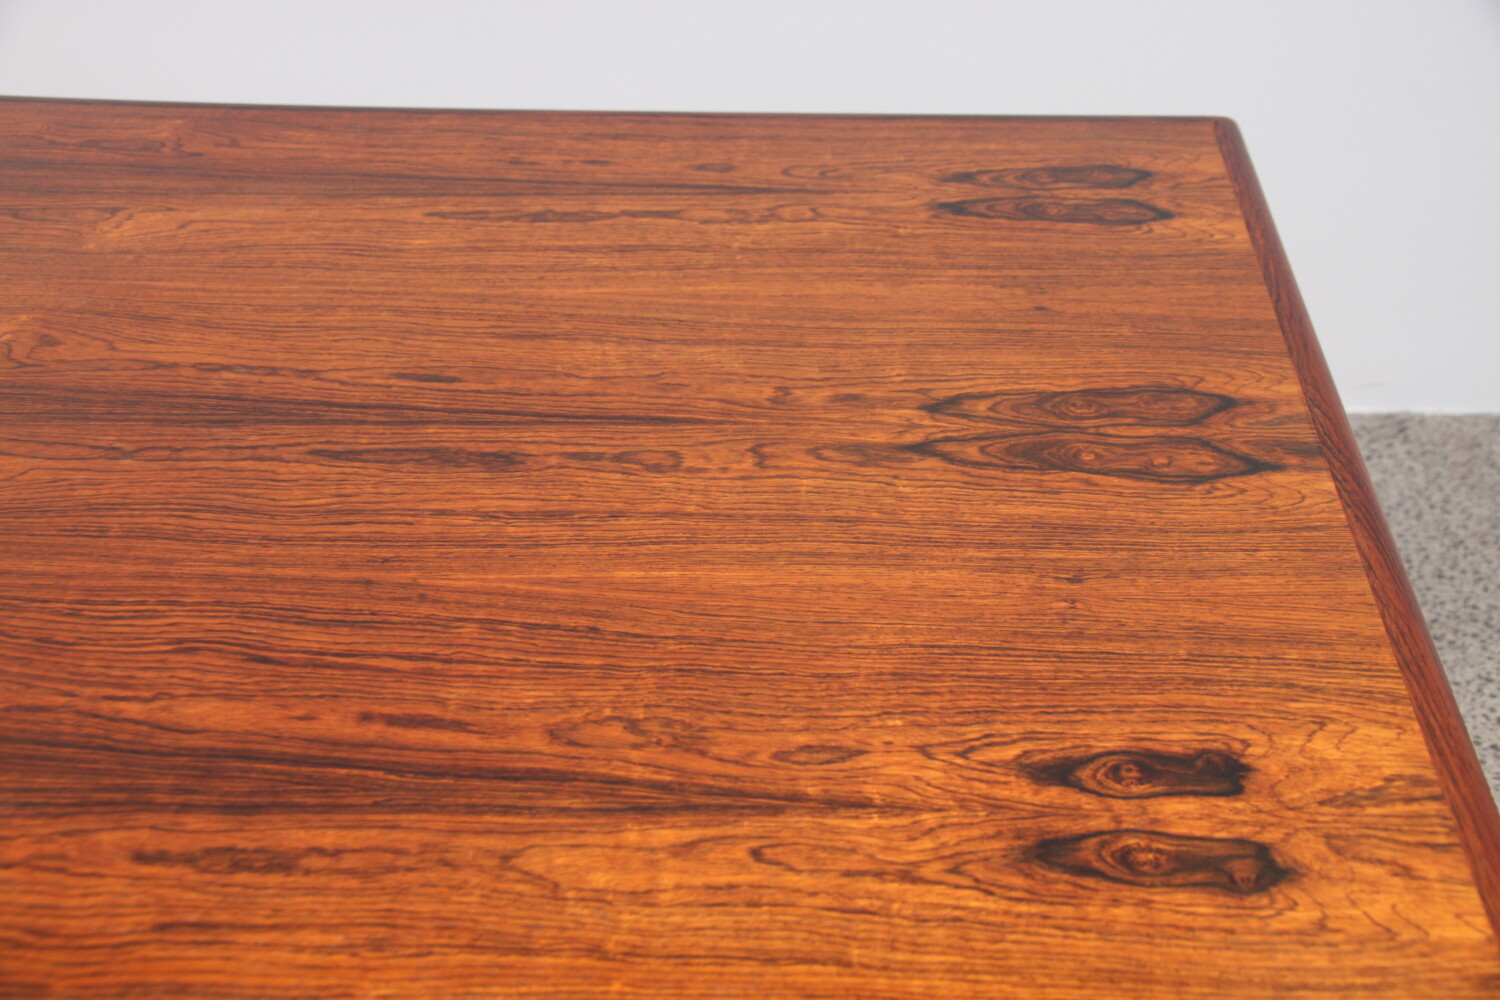 Rosewood Desk  by Arne Vodder sold